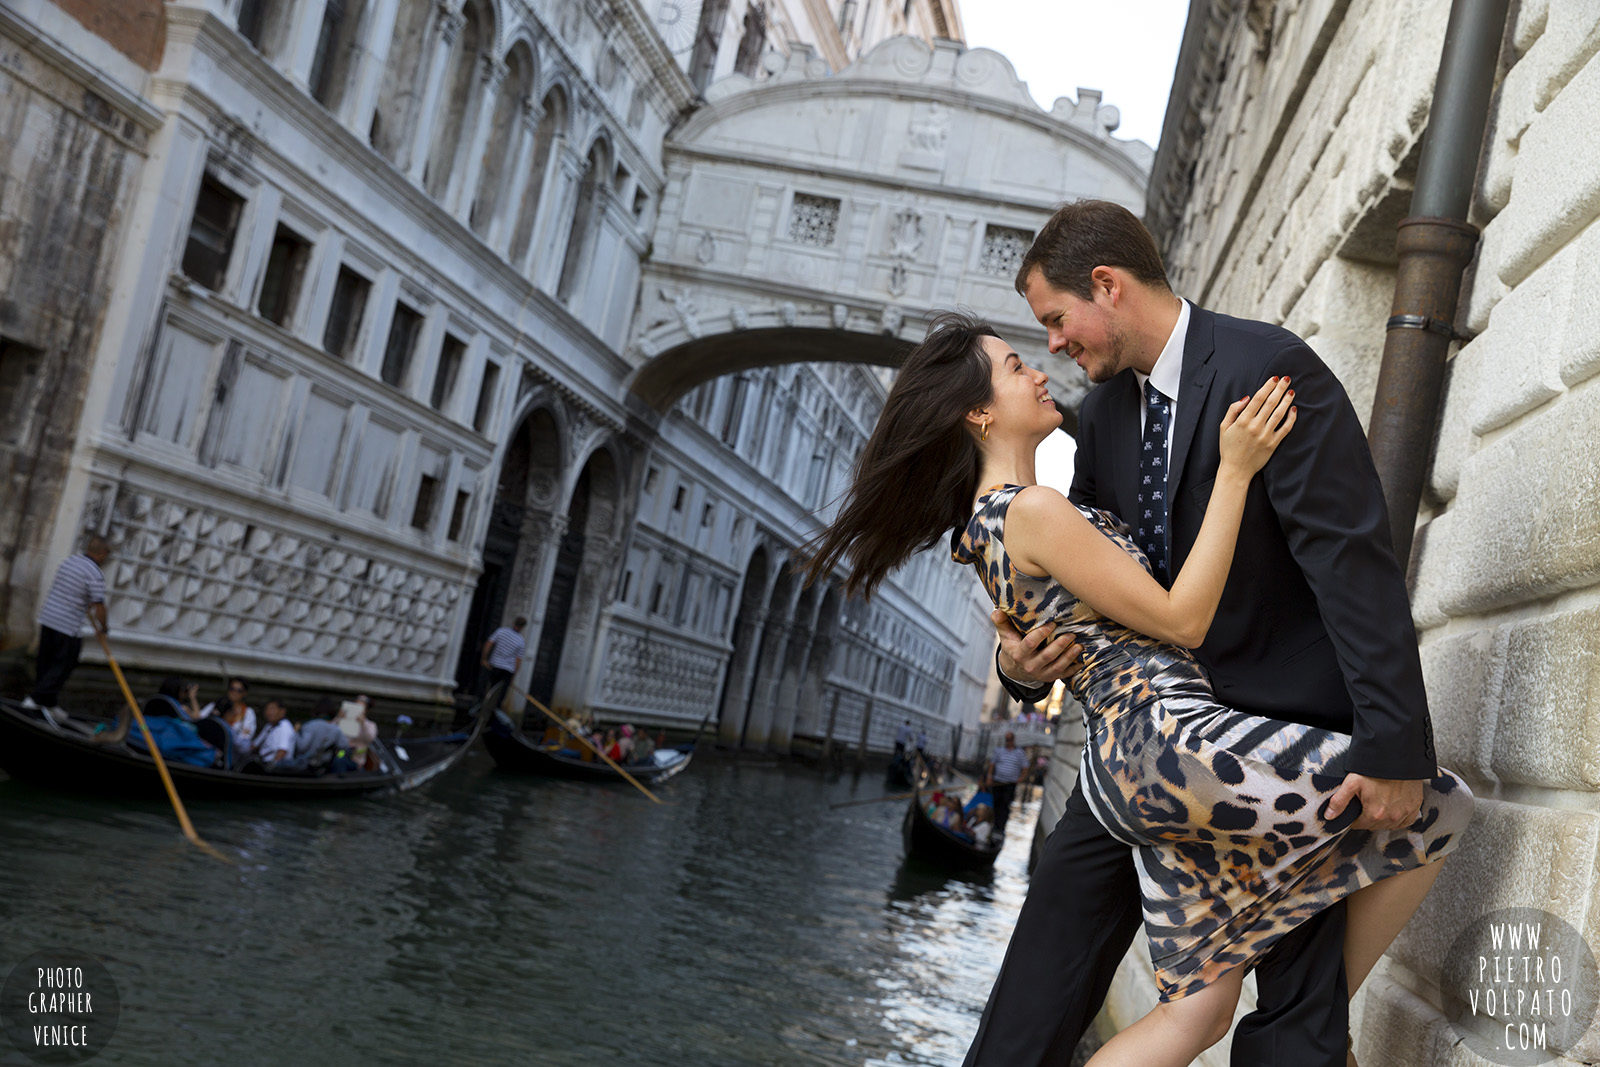 venice-honeymoon-photographer-romantic-photoshoot-and-tour-for-couples-vacation-20160927_06